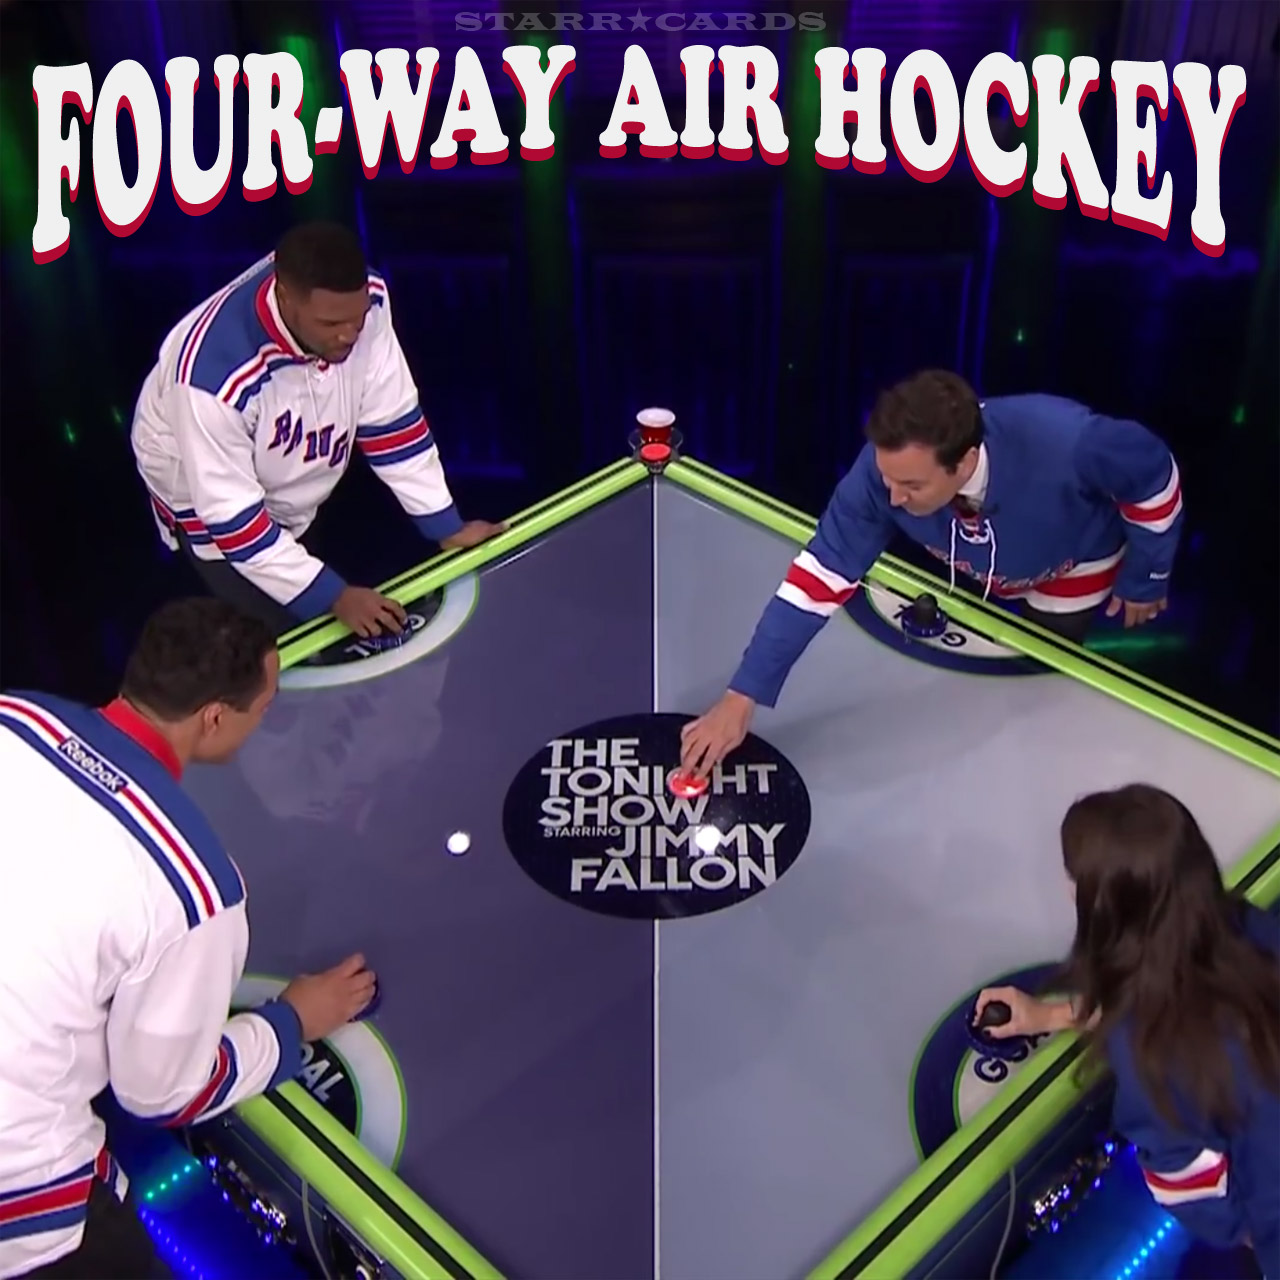 Jimmy Fallon, Eve Hewson, Michael Strahan and Tony Gonzalez play four-way air hockey